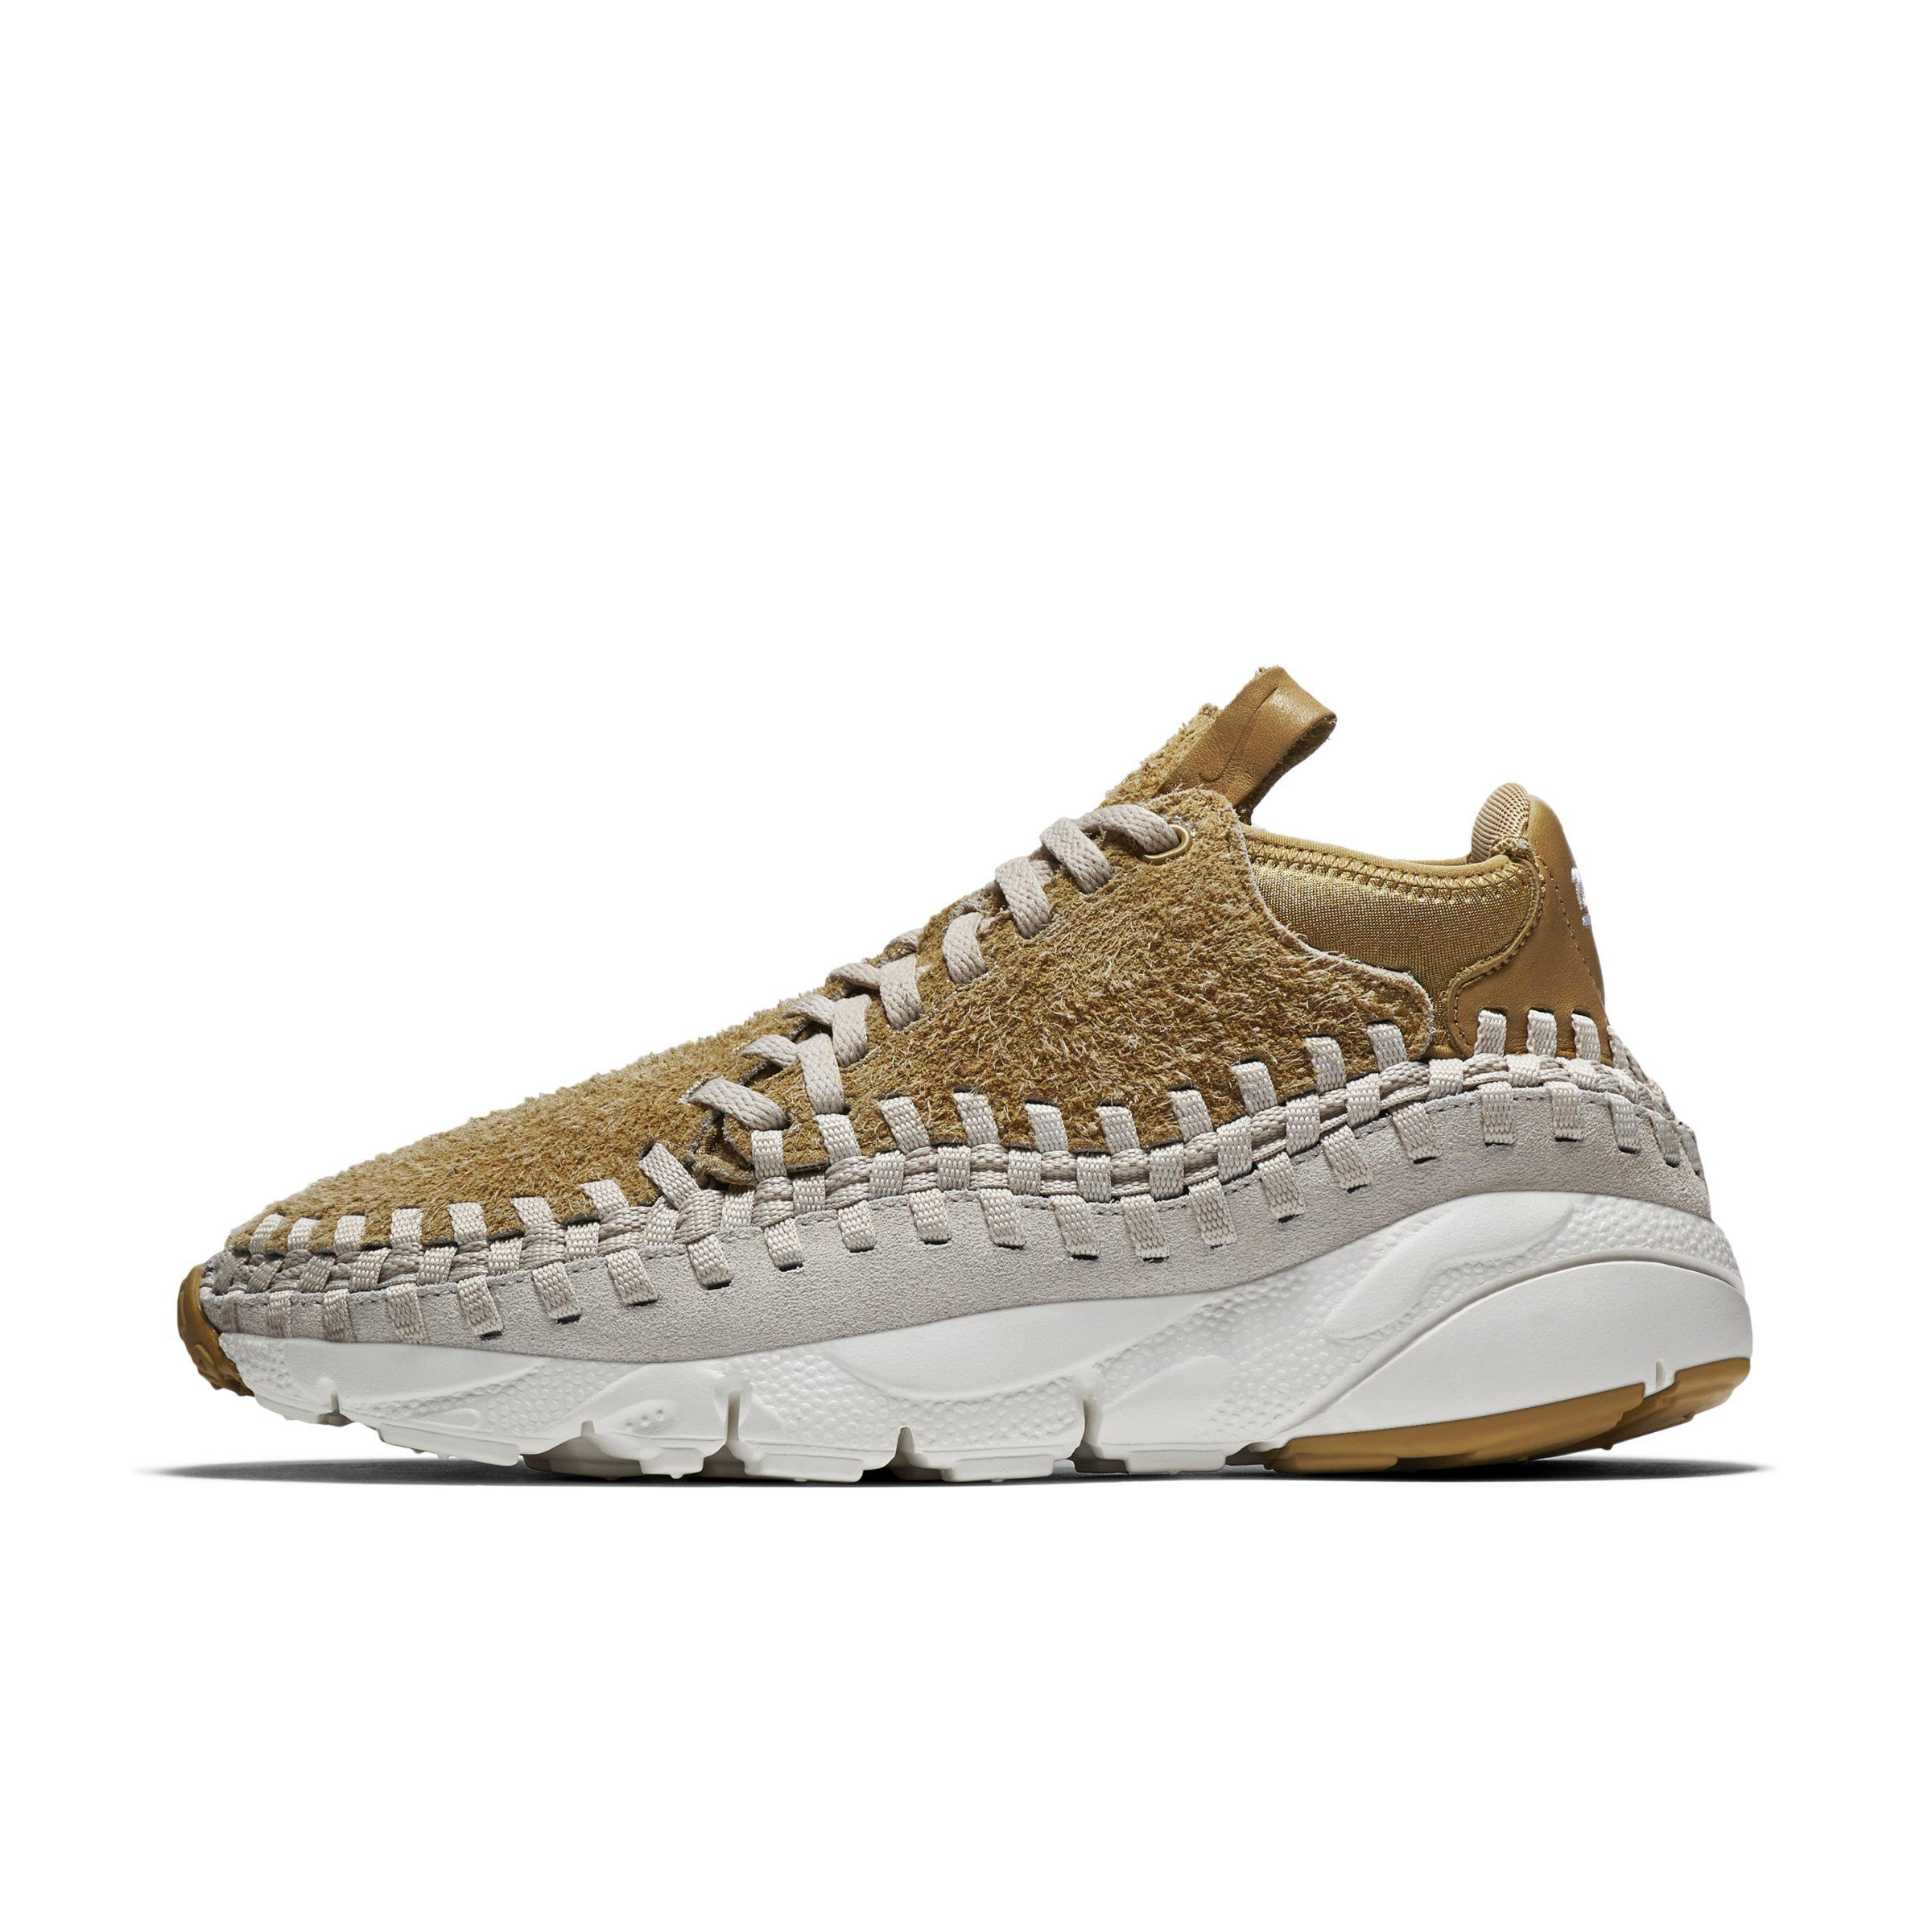 6d91adcd98c2 Nike Air Footscape Woven Chukka Qs Shoe in Metallic for Men - Lyst